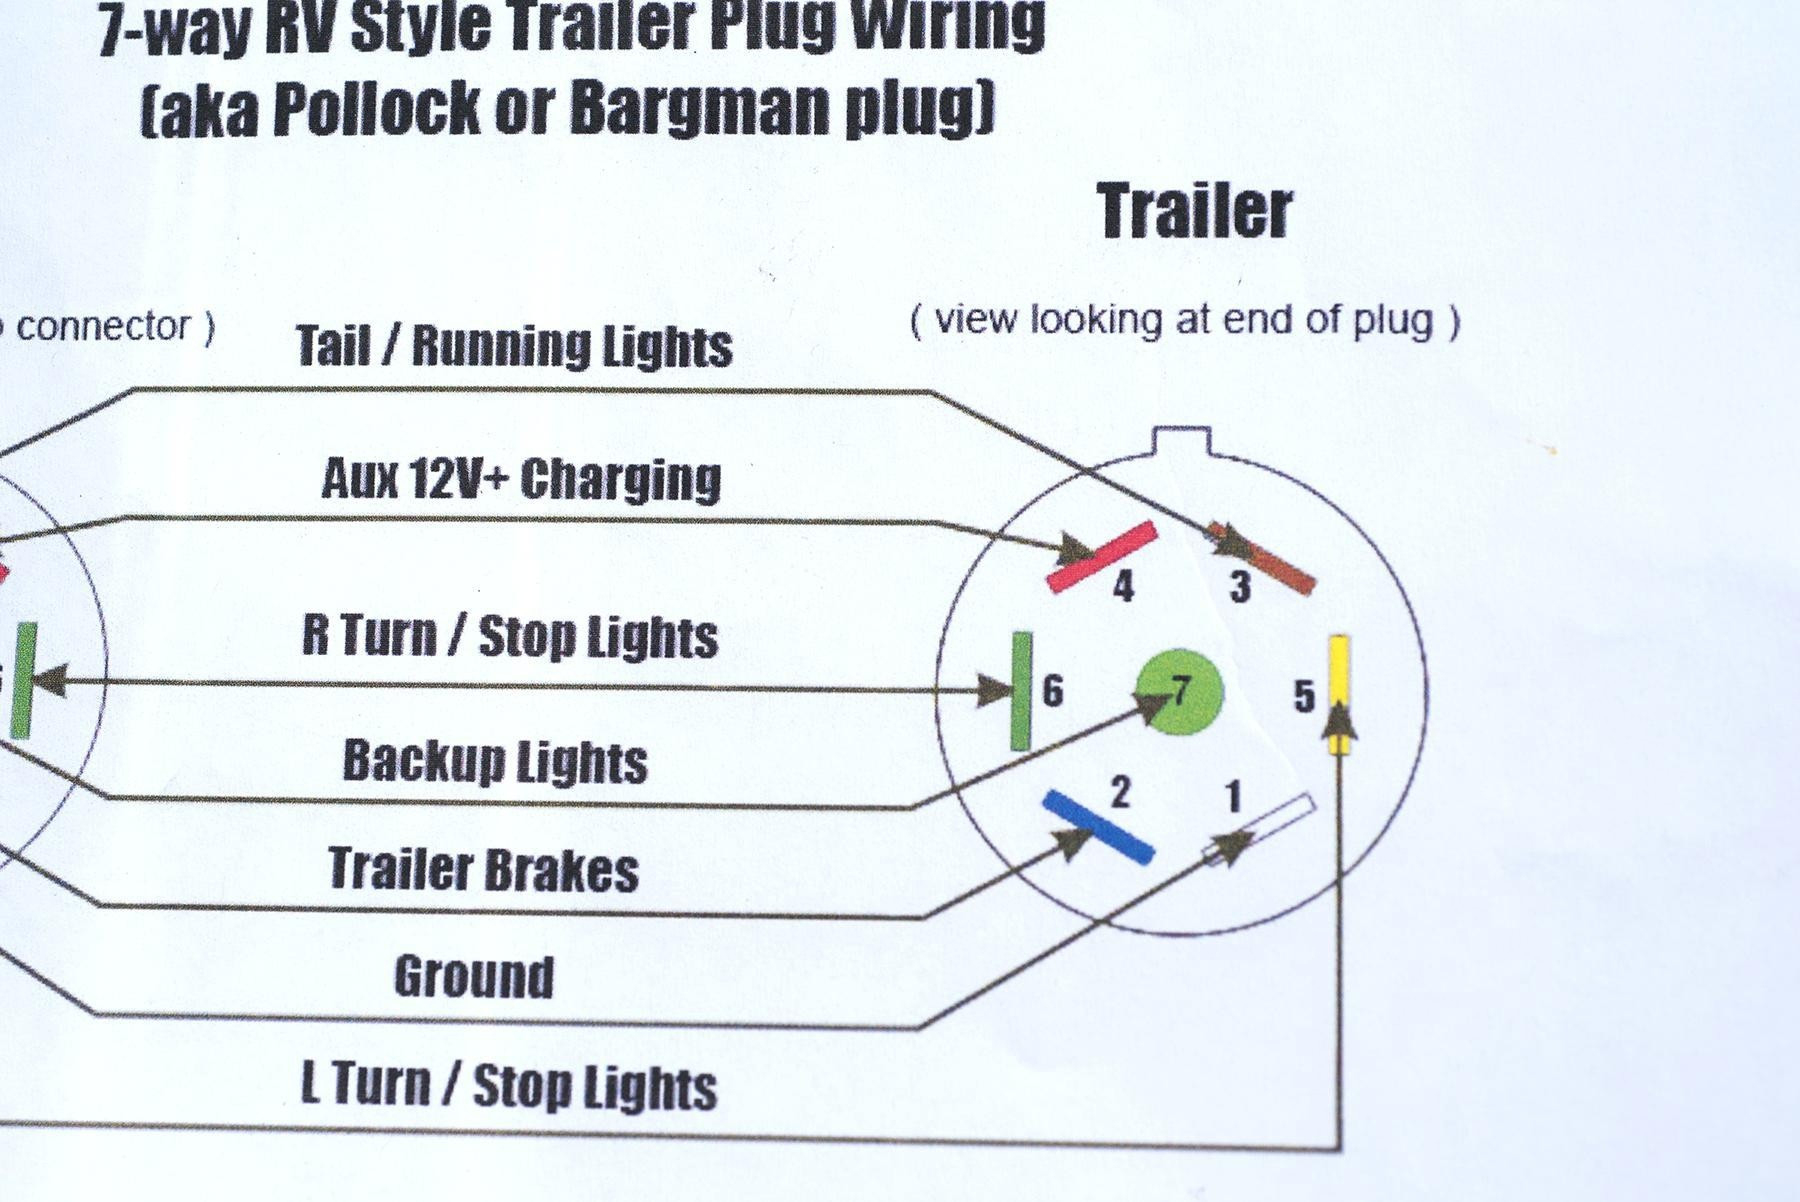 7 Way Flat Wiring Diagram - Wiring Block Diagram - Trailer Connector Wiring Diagram